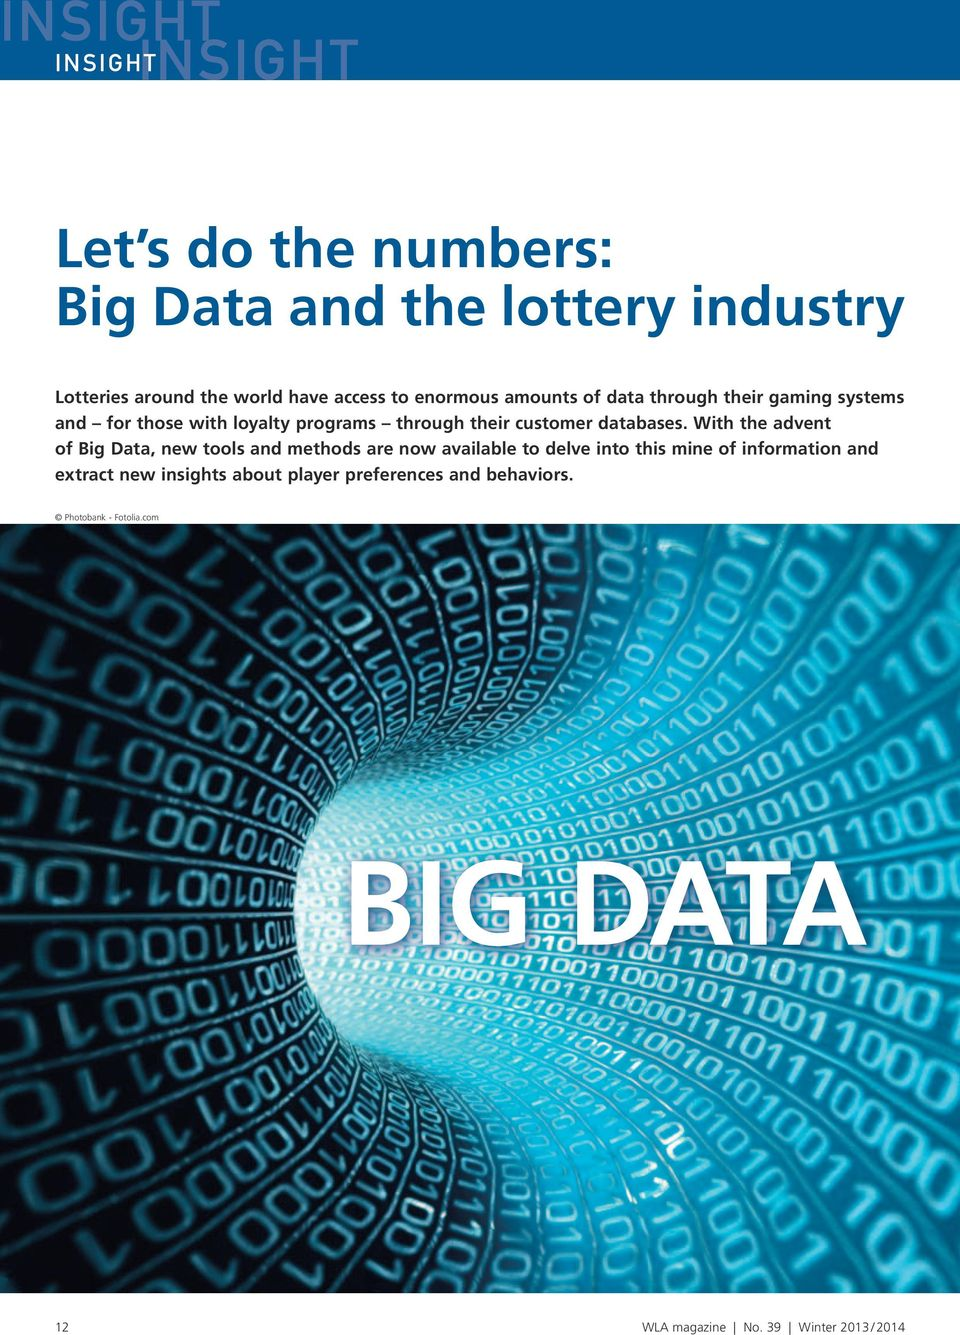 With the advent of Big Data, new tools and methods are now available to delve into this mine of information and